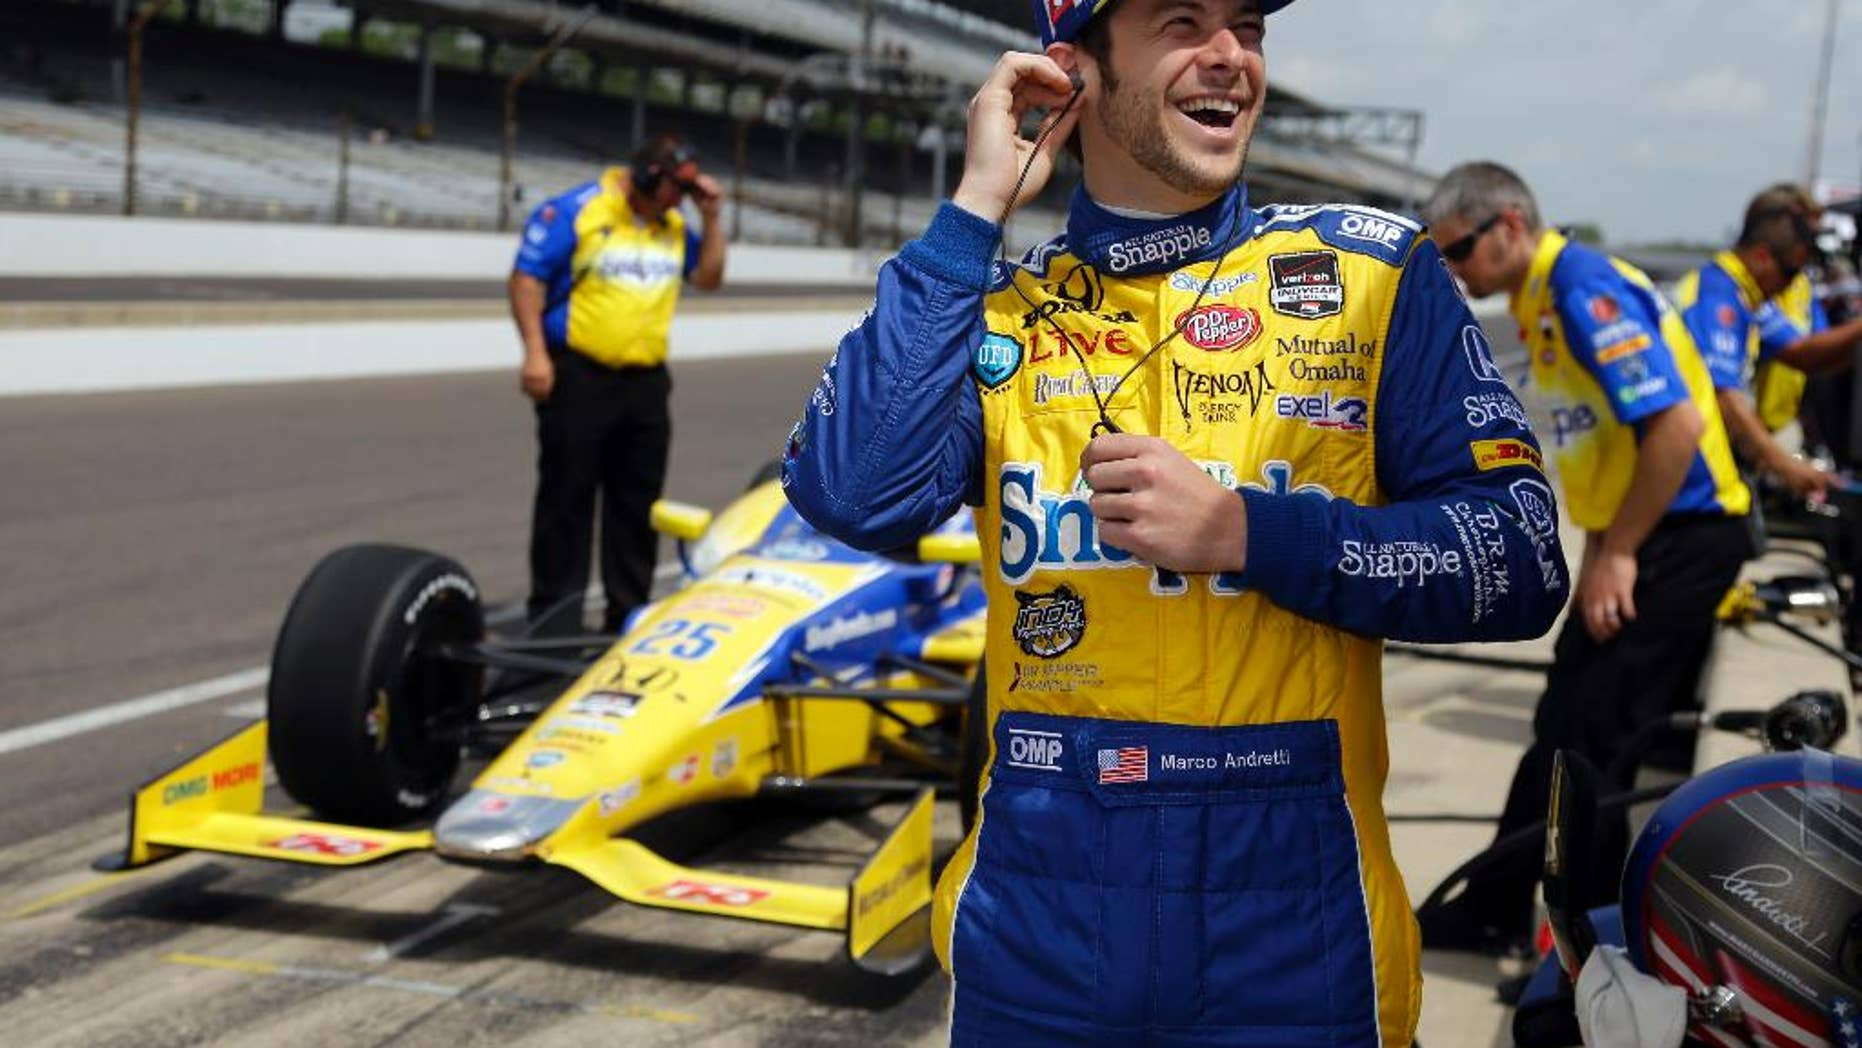 Marco Andretti laughs as he waits for the track to open during practice for the Indianapolis 500 IndyCar auto race at the Indianapolis Motor Speedway in Indianapolis, Monday, May 12, 2014. (AP Photo)